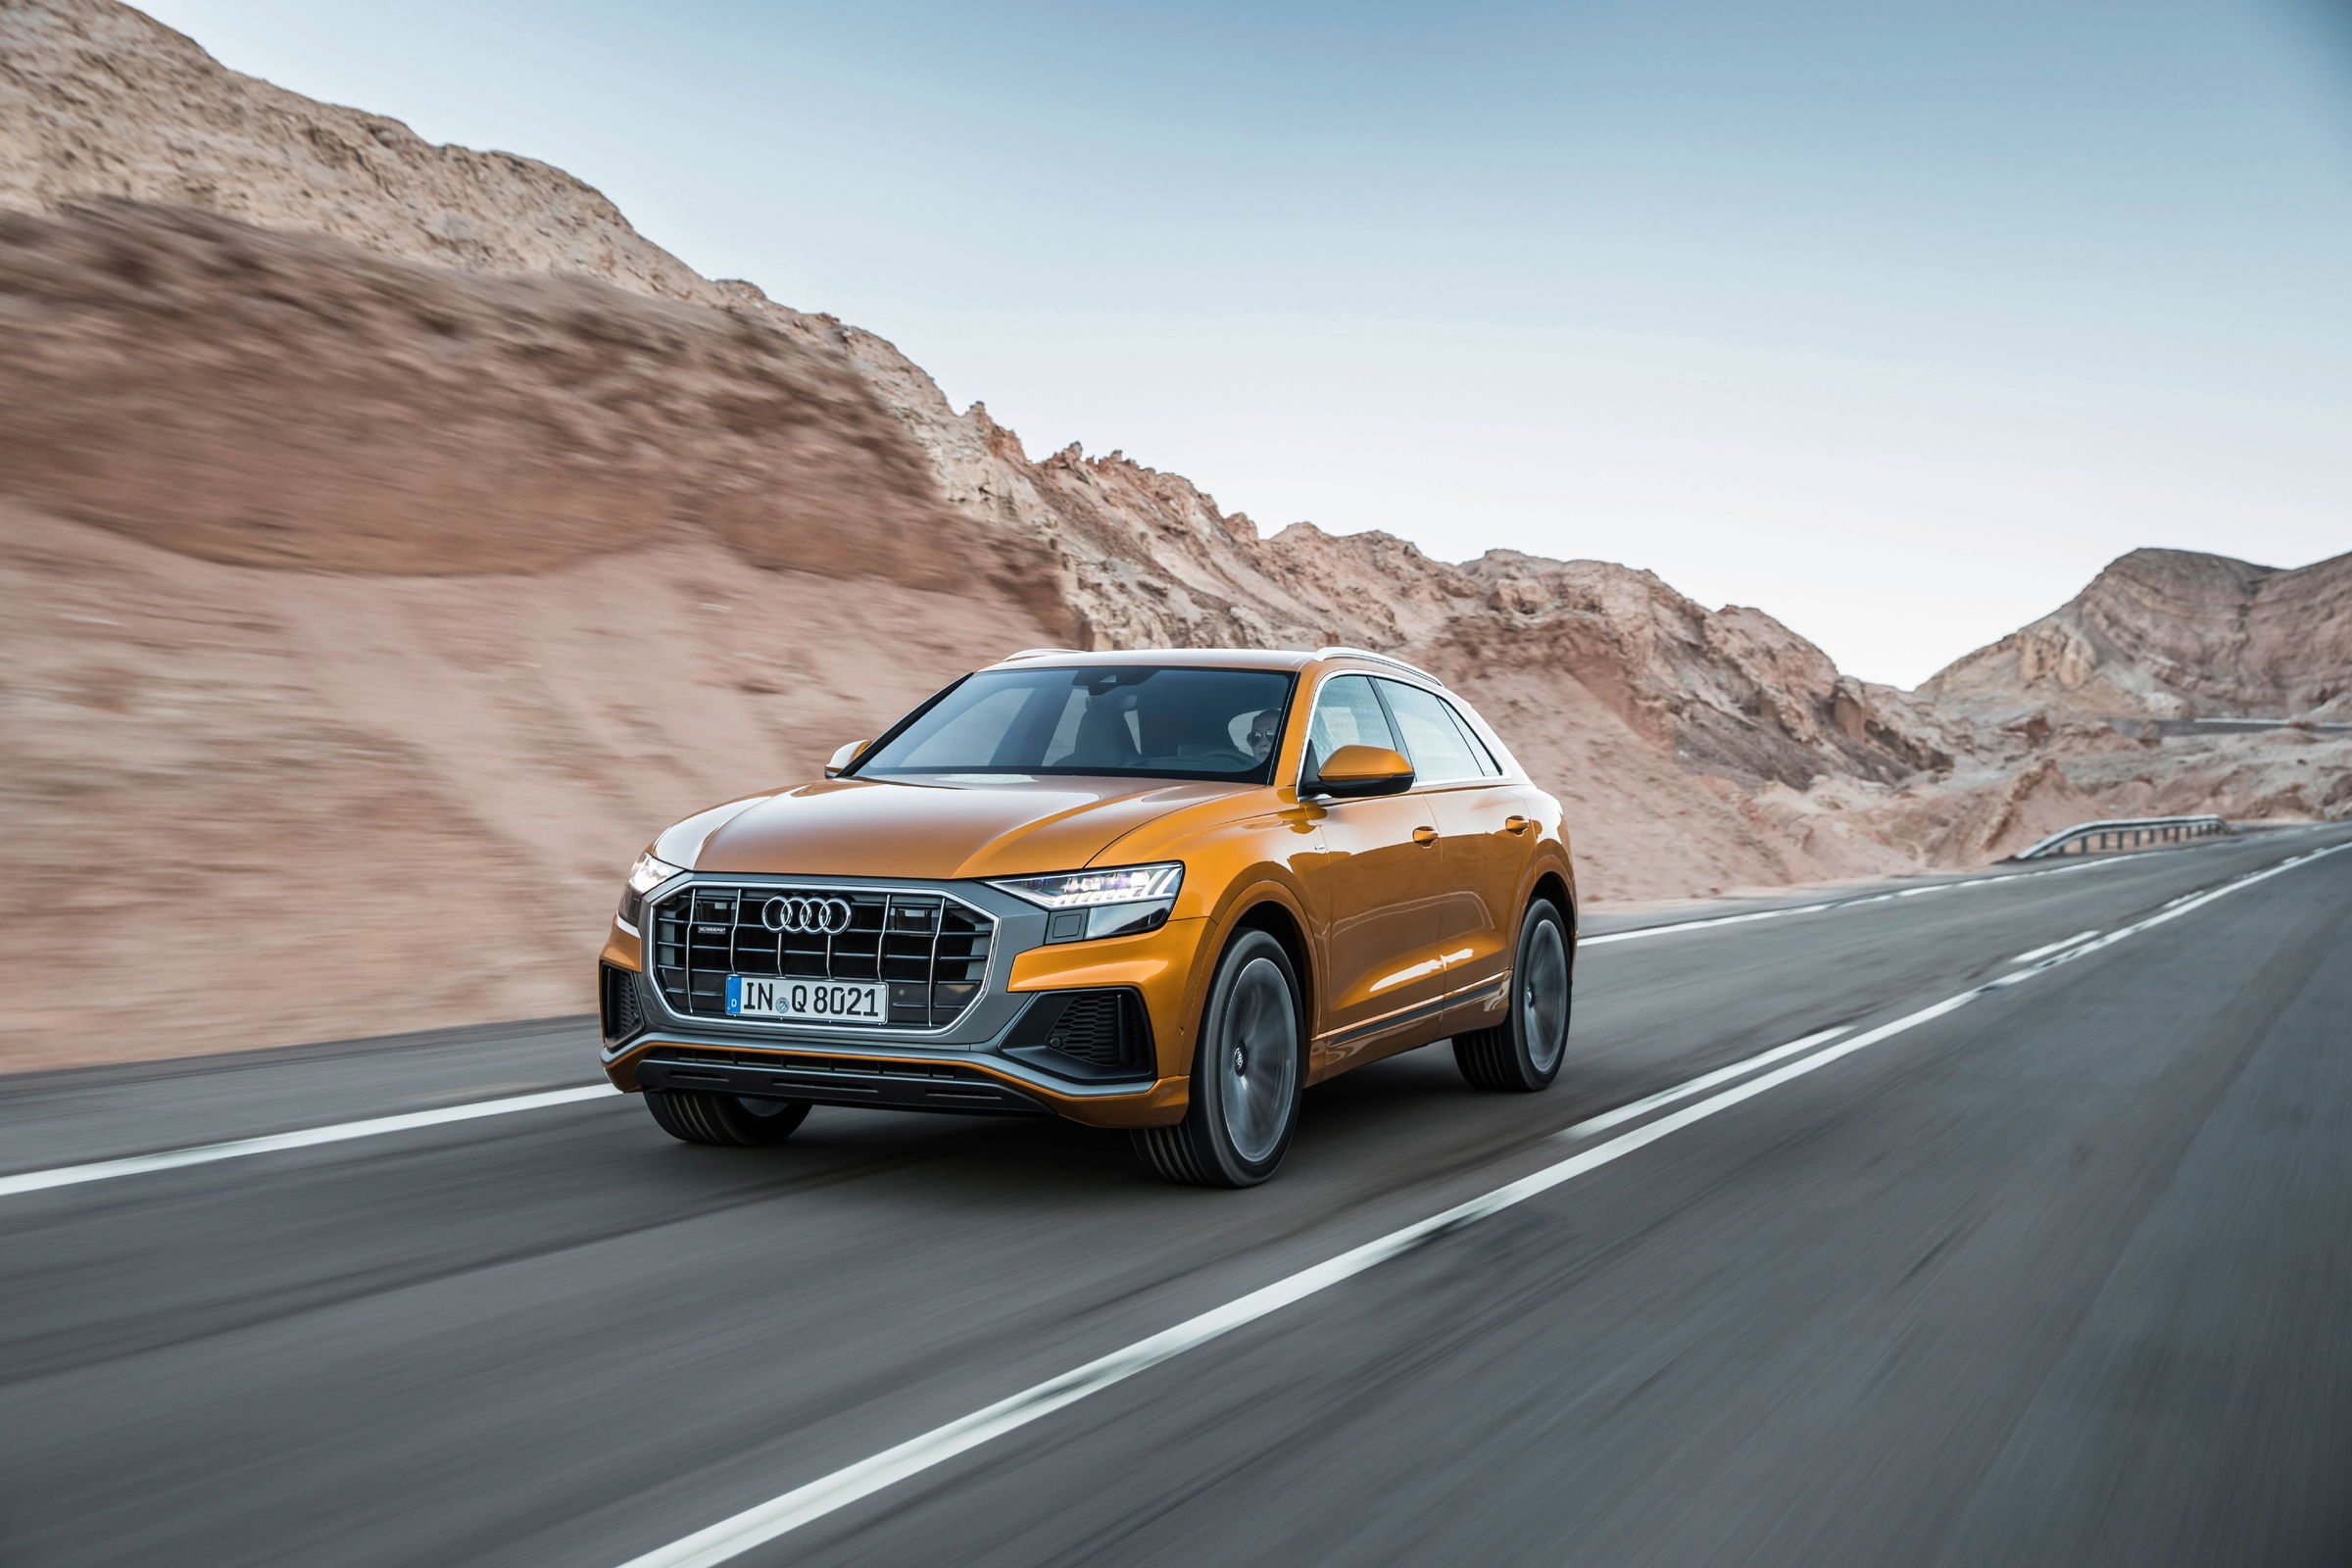 Garage Audi Tours The New Top Model Of The Q Family Audi Q8 Now Available To Order